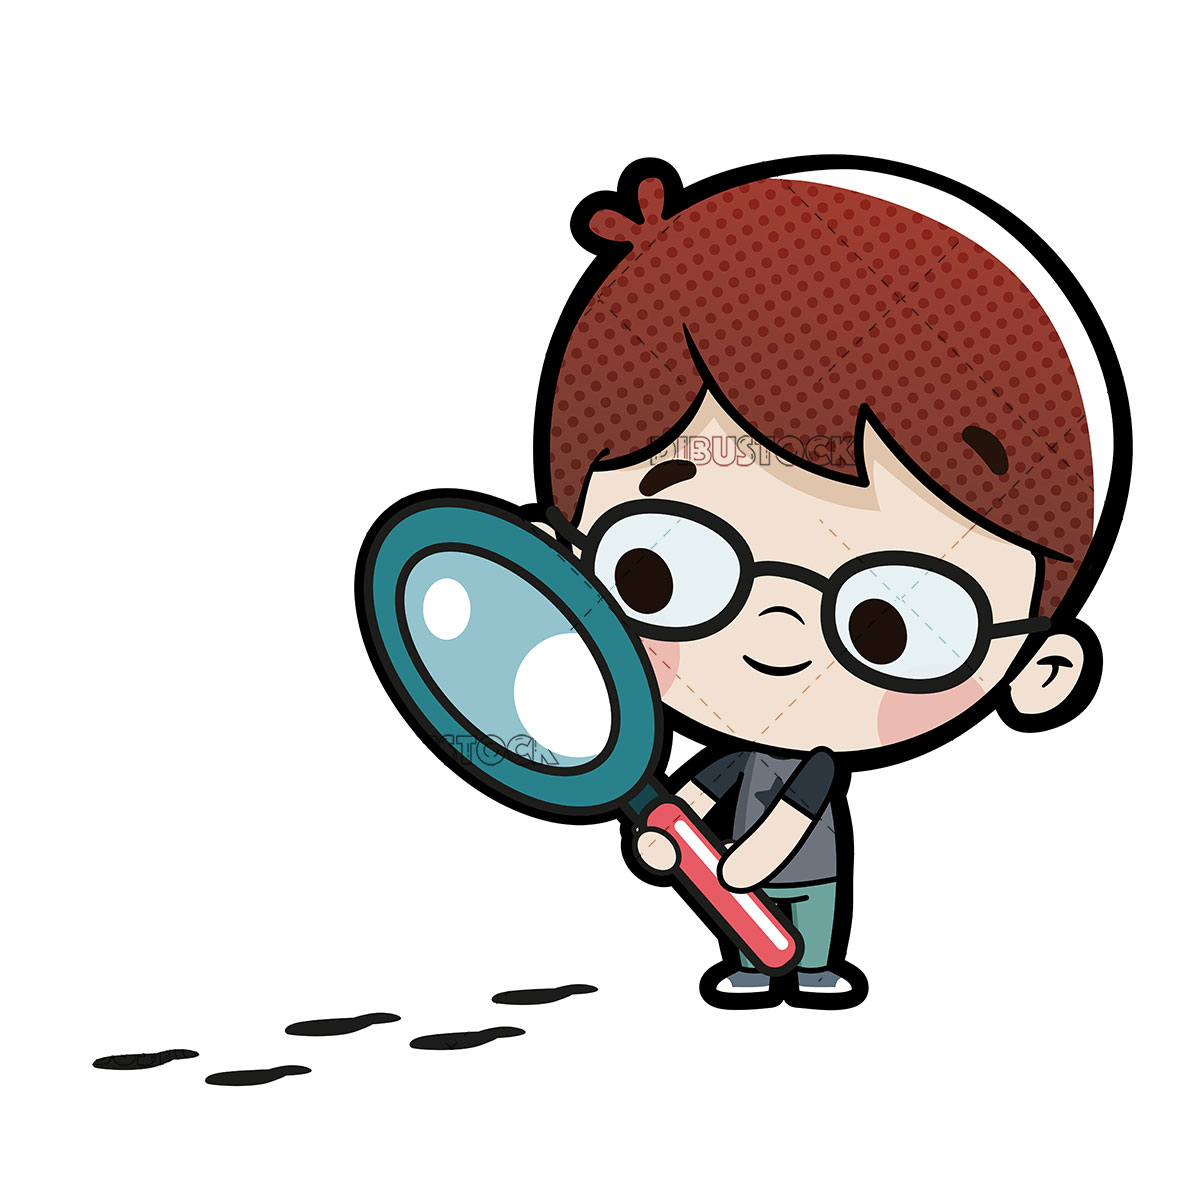 Boy with a magnifying glass following some footprints